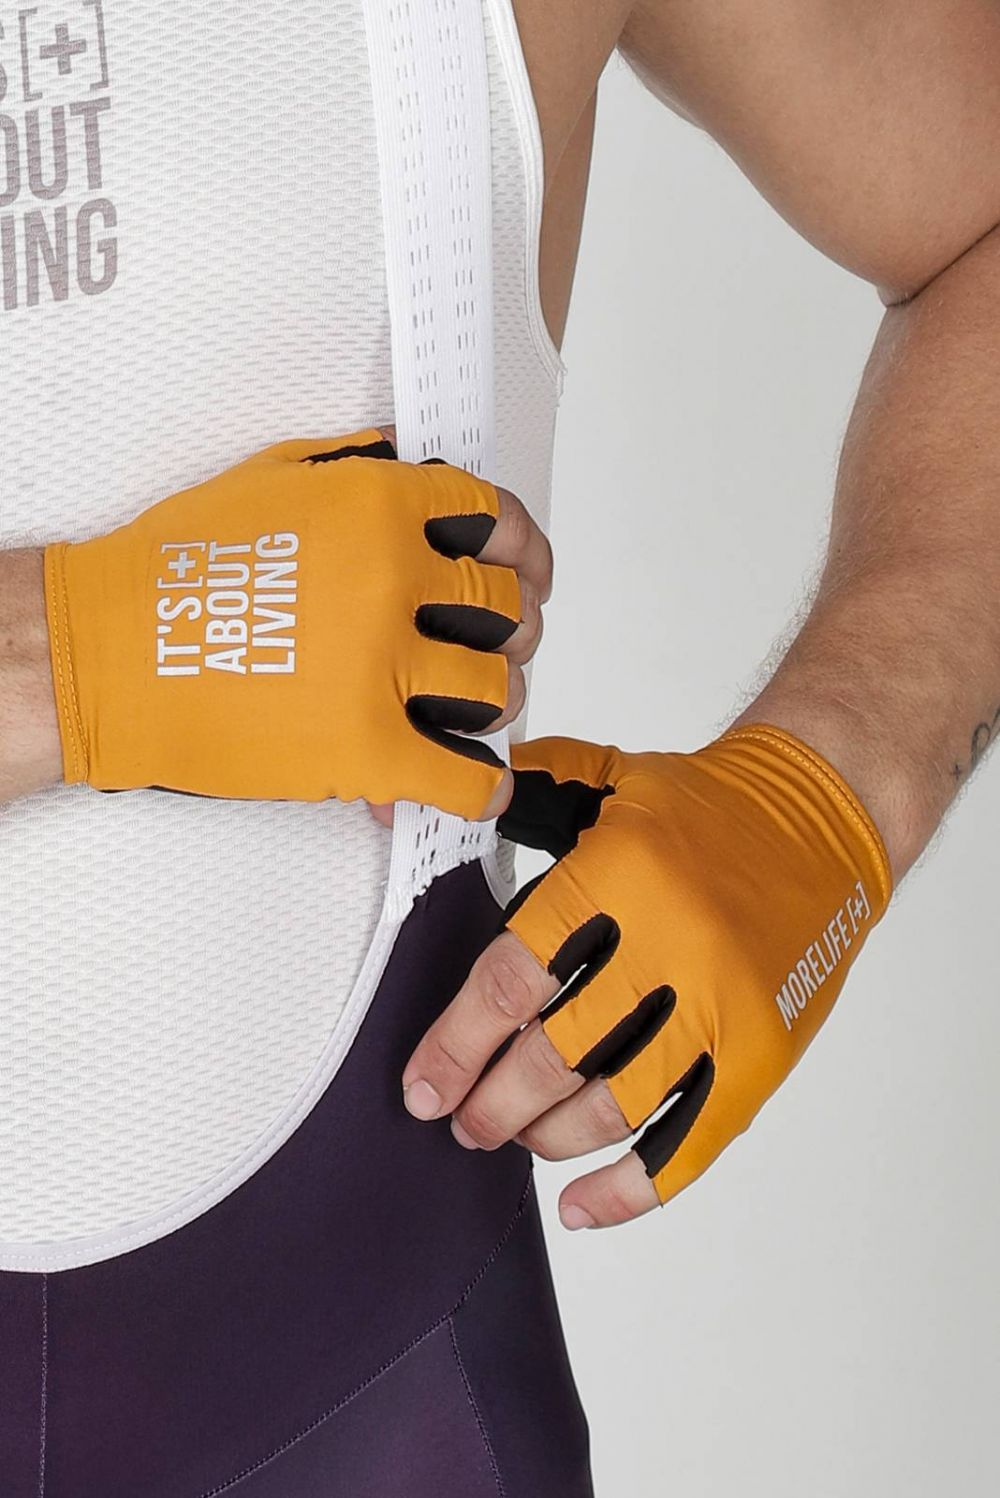 CRAB ORANGE GLOVES